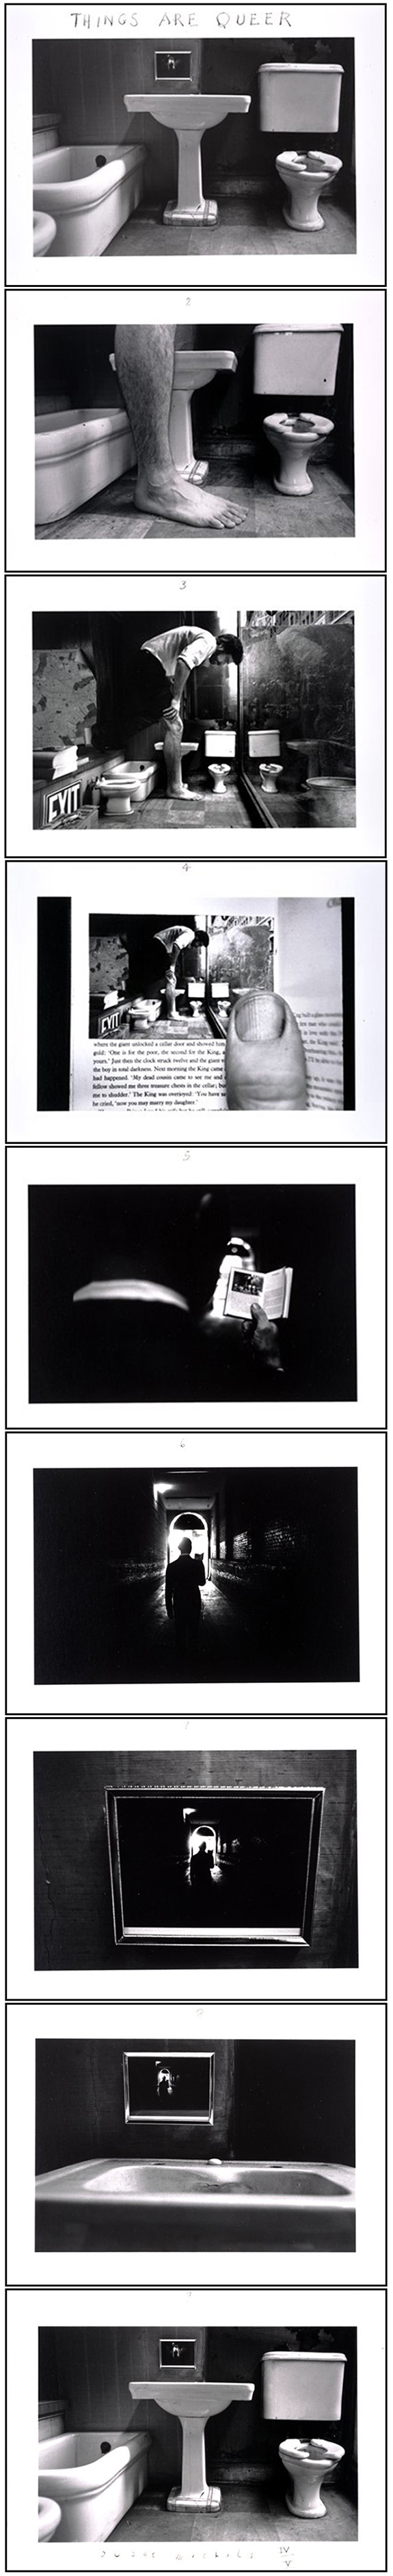 Duane Michals photo series